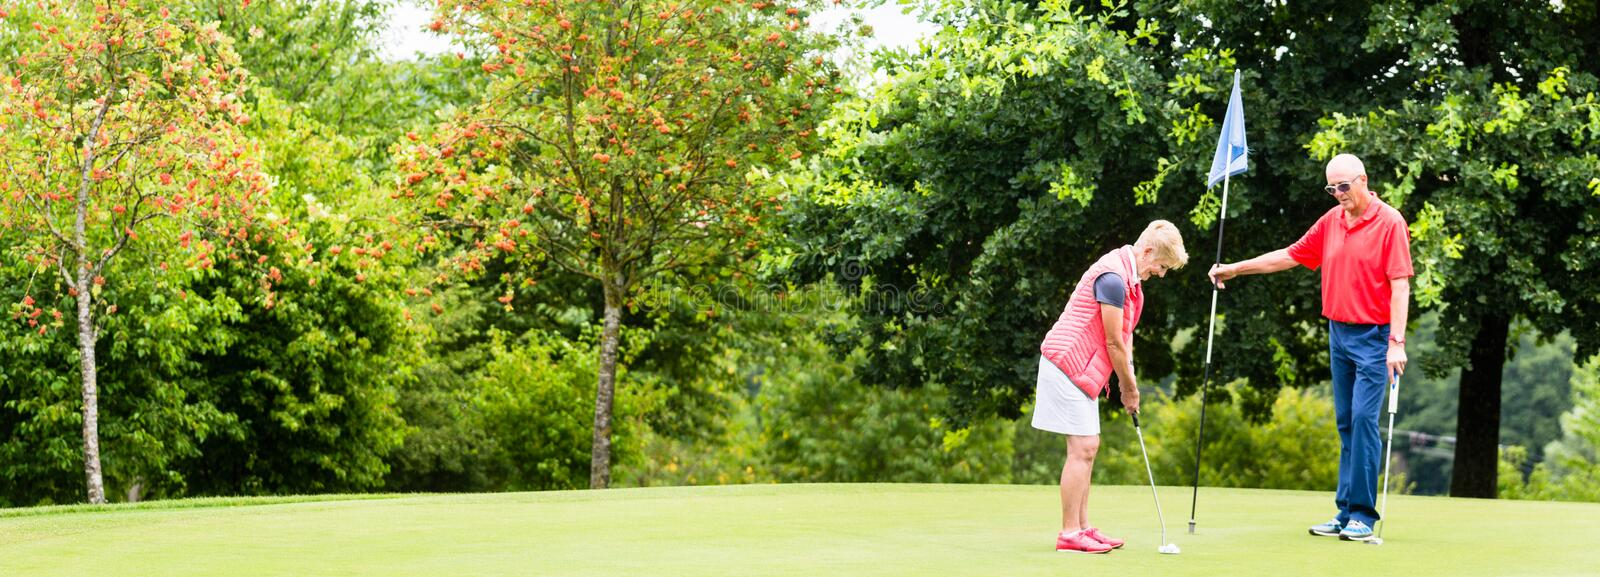 Senior woman and man playing golf putting on green stock photography